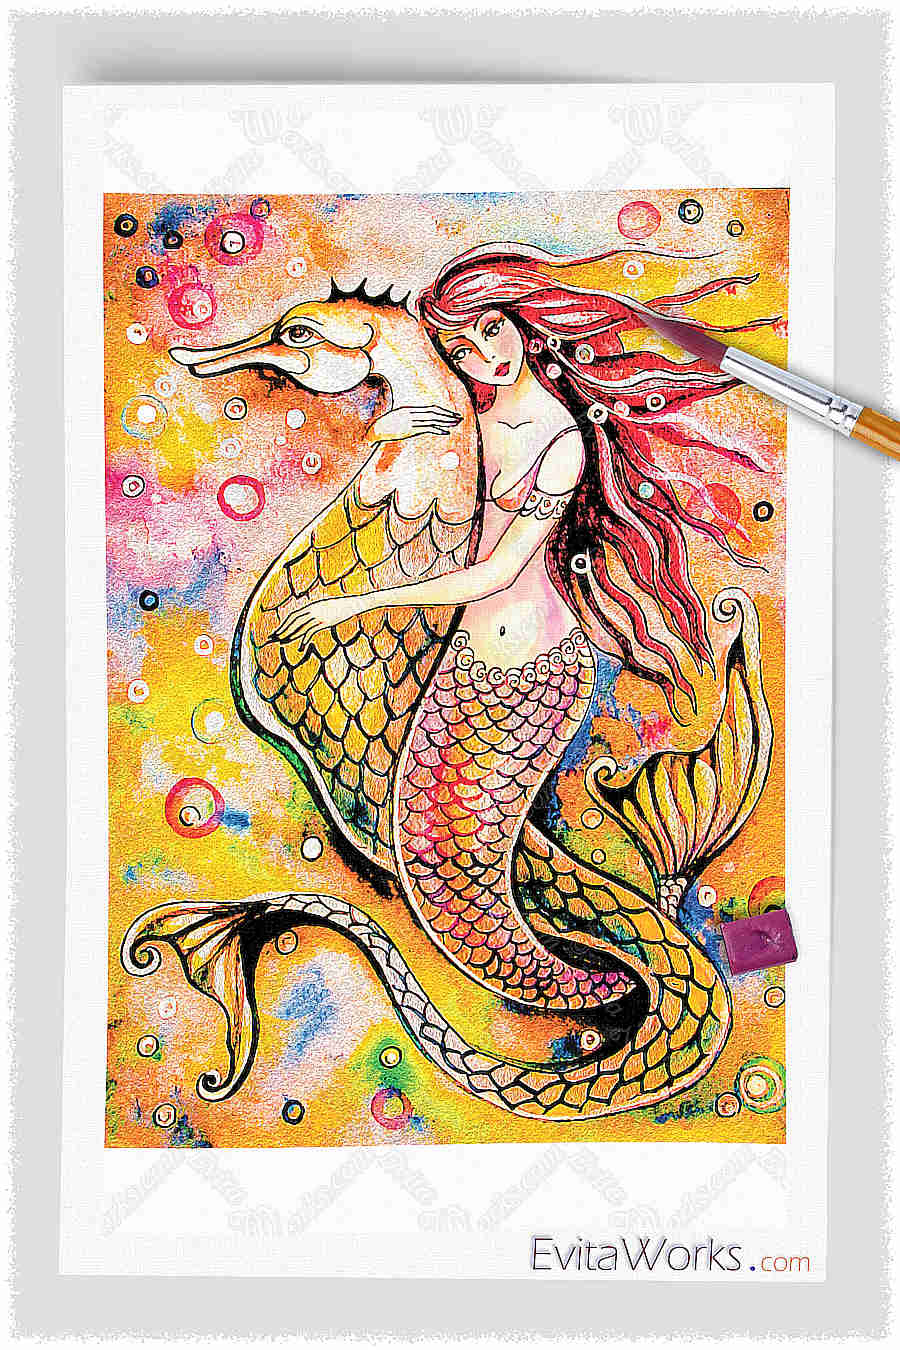 Mermaid 25 ~ EvitaWorks